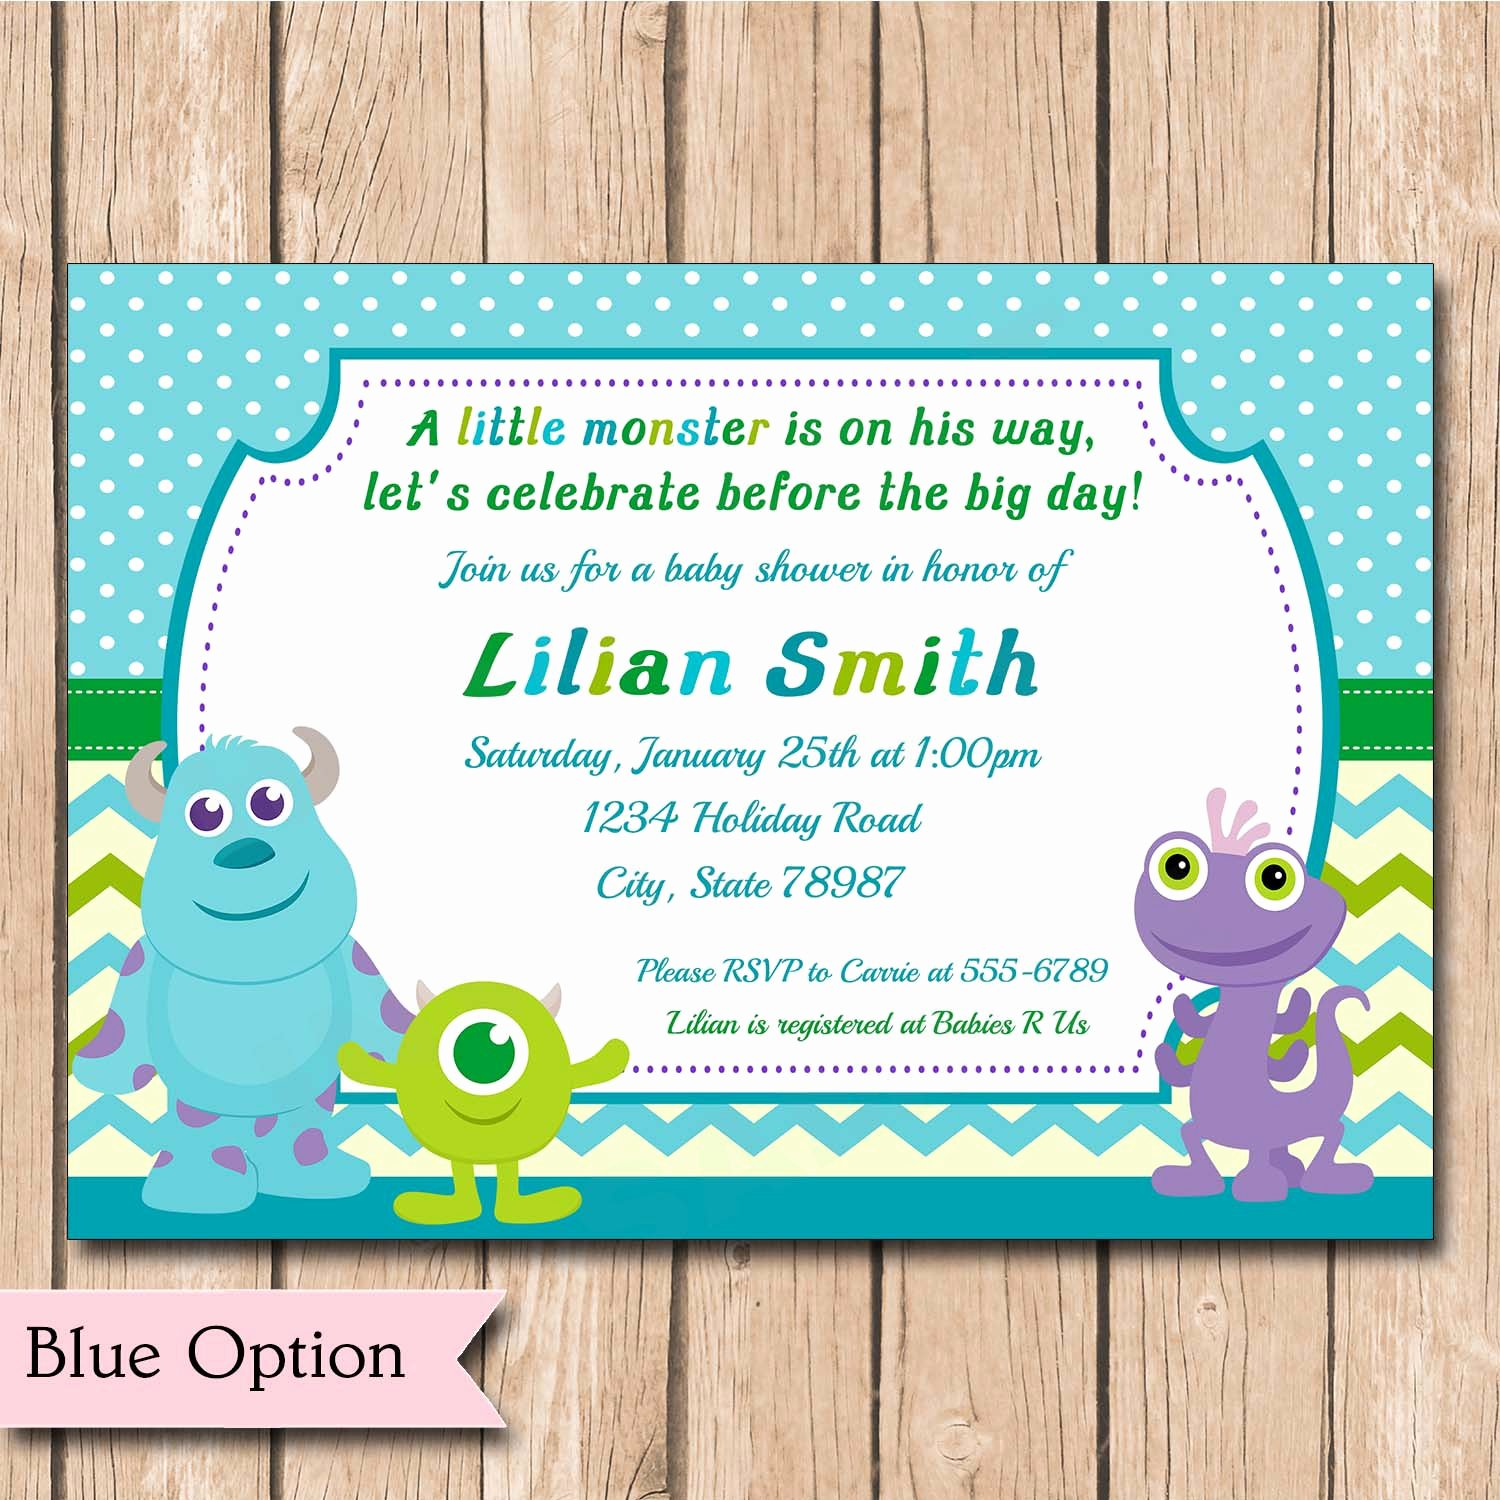 Free Monsters Inc Invitation Template Lovely Mini Monsters Inc Baby Shower Invitation Boy or Girl